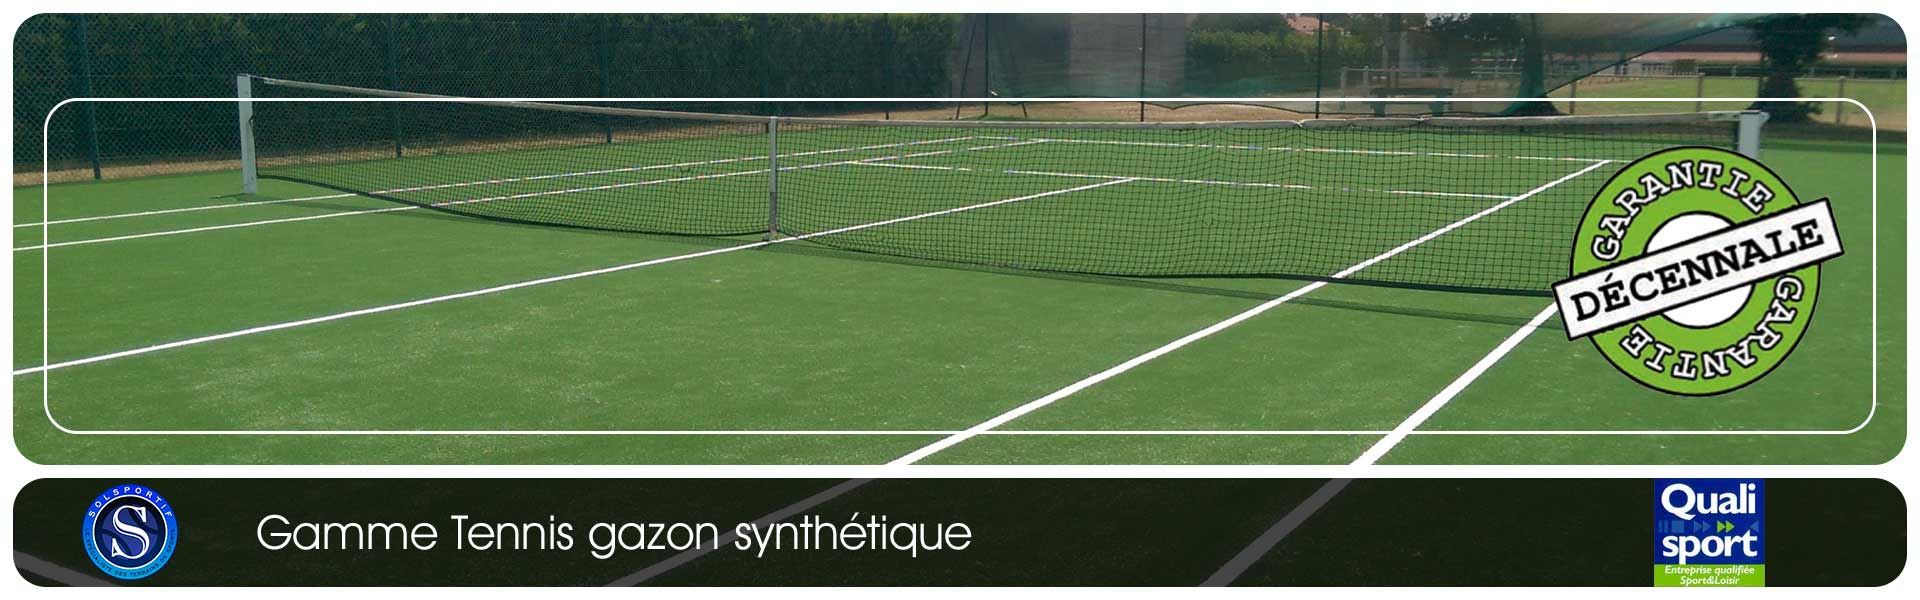 solsportif tennis, beton poreux, gazon synthetique, terre battue